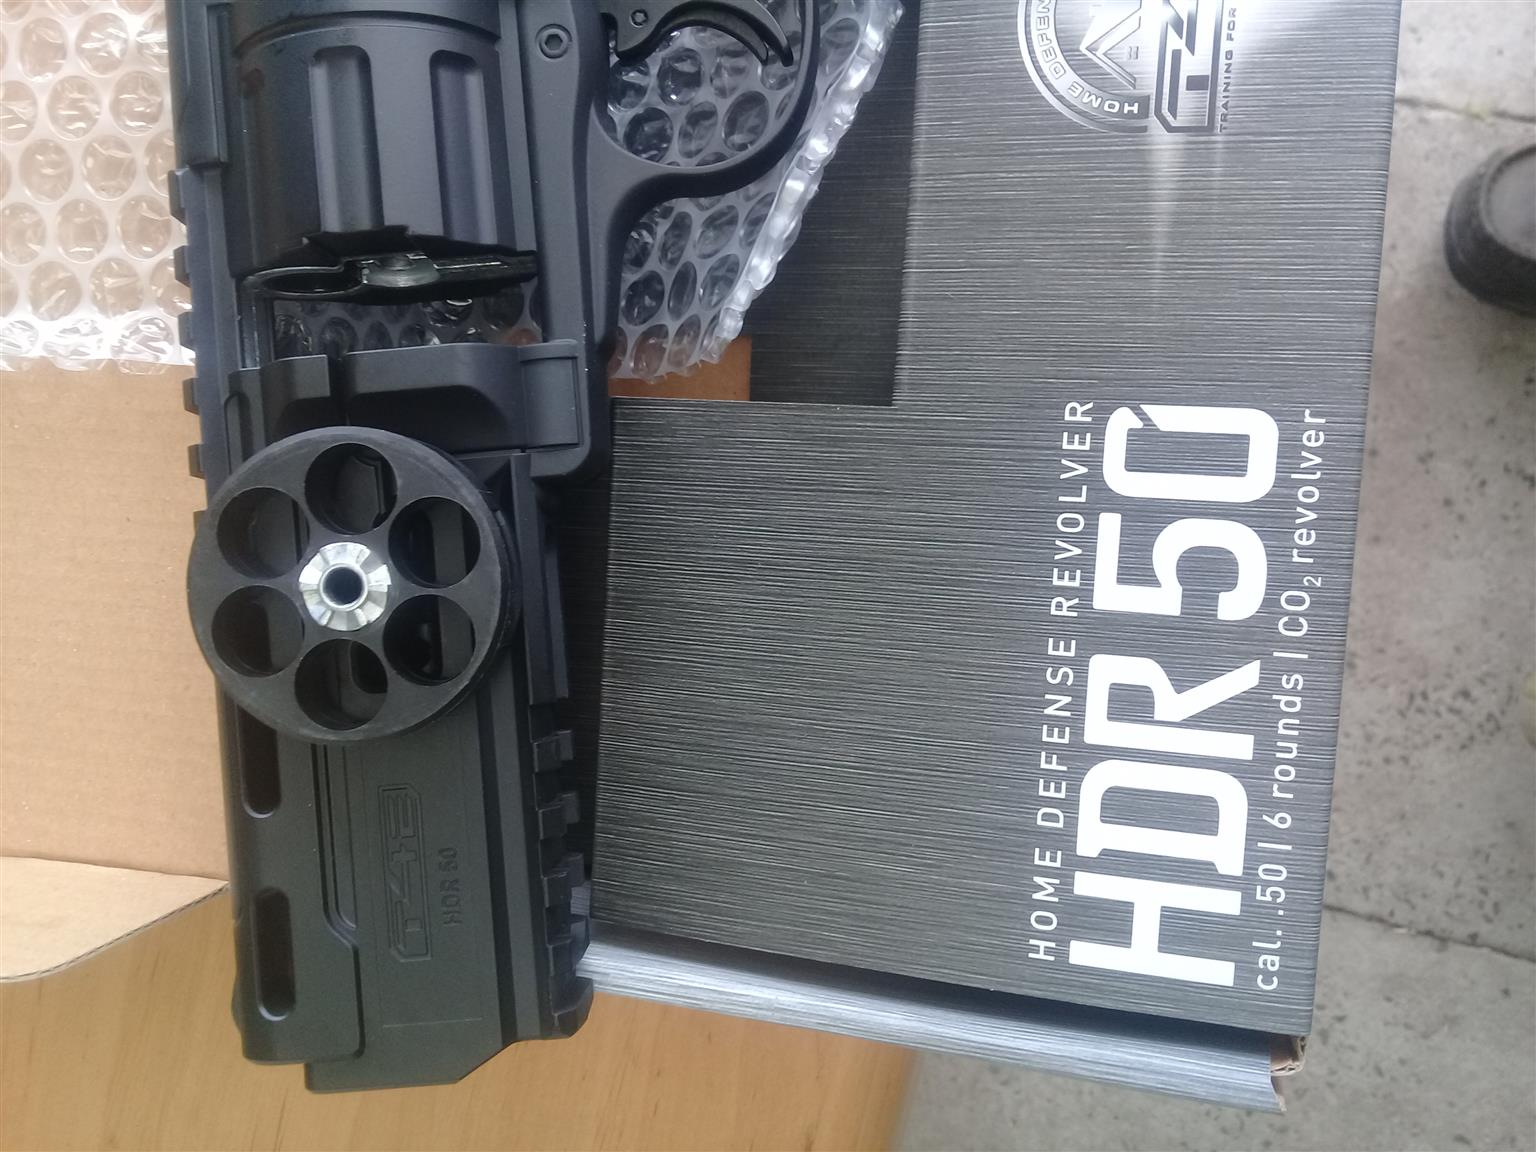 HDR50 High velocity 6 shot revolver. Very potent self defence weapon in .50 inch solid plastic balls